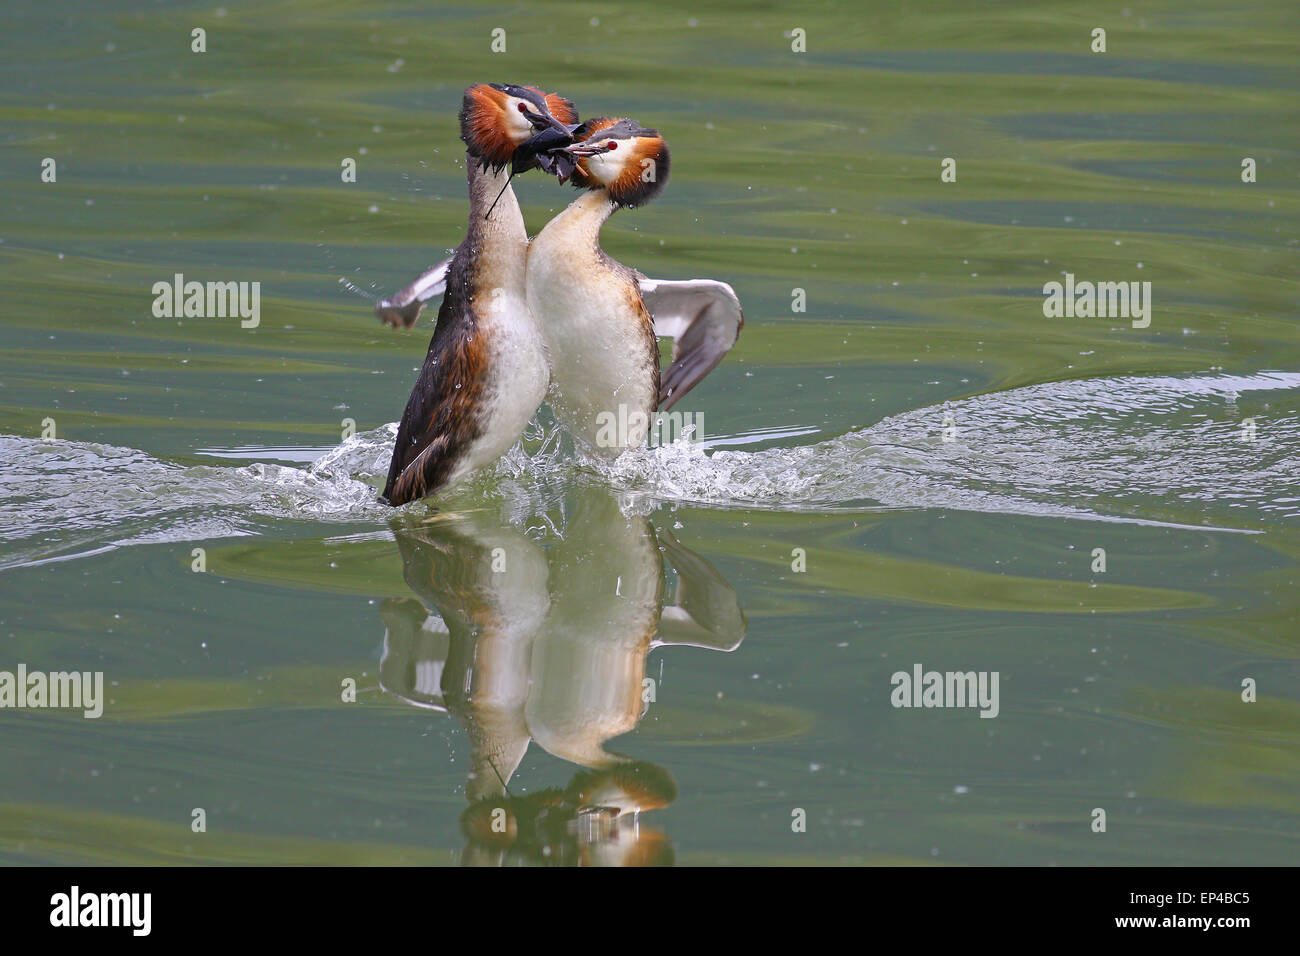 Great crested grebes mating dance - Stock Image